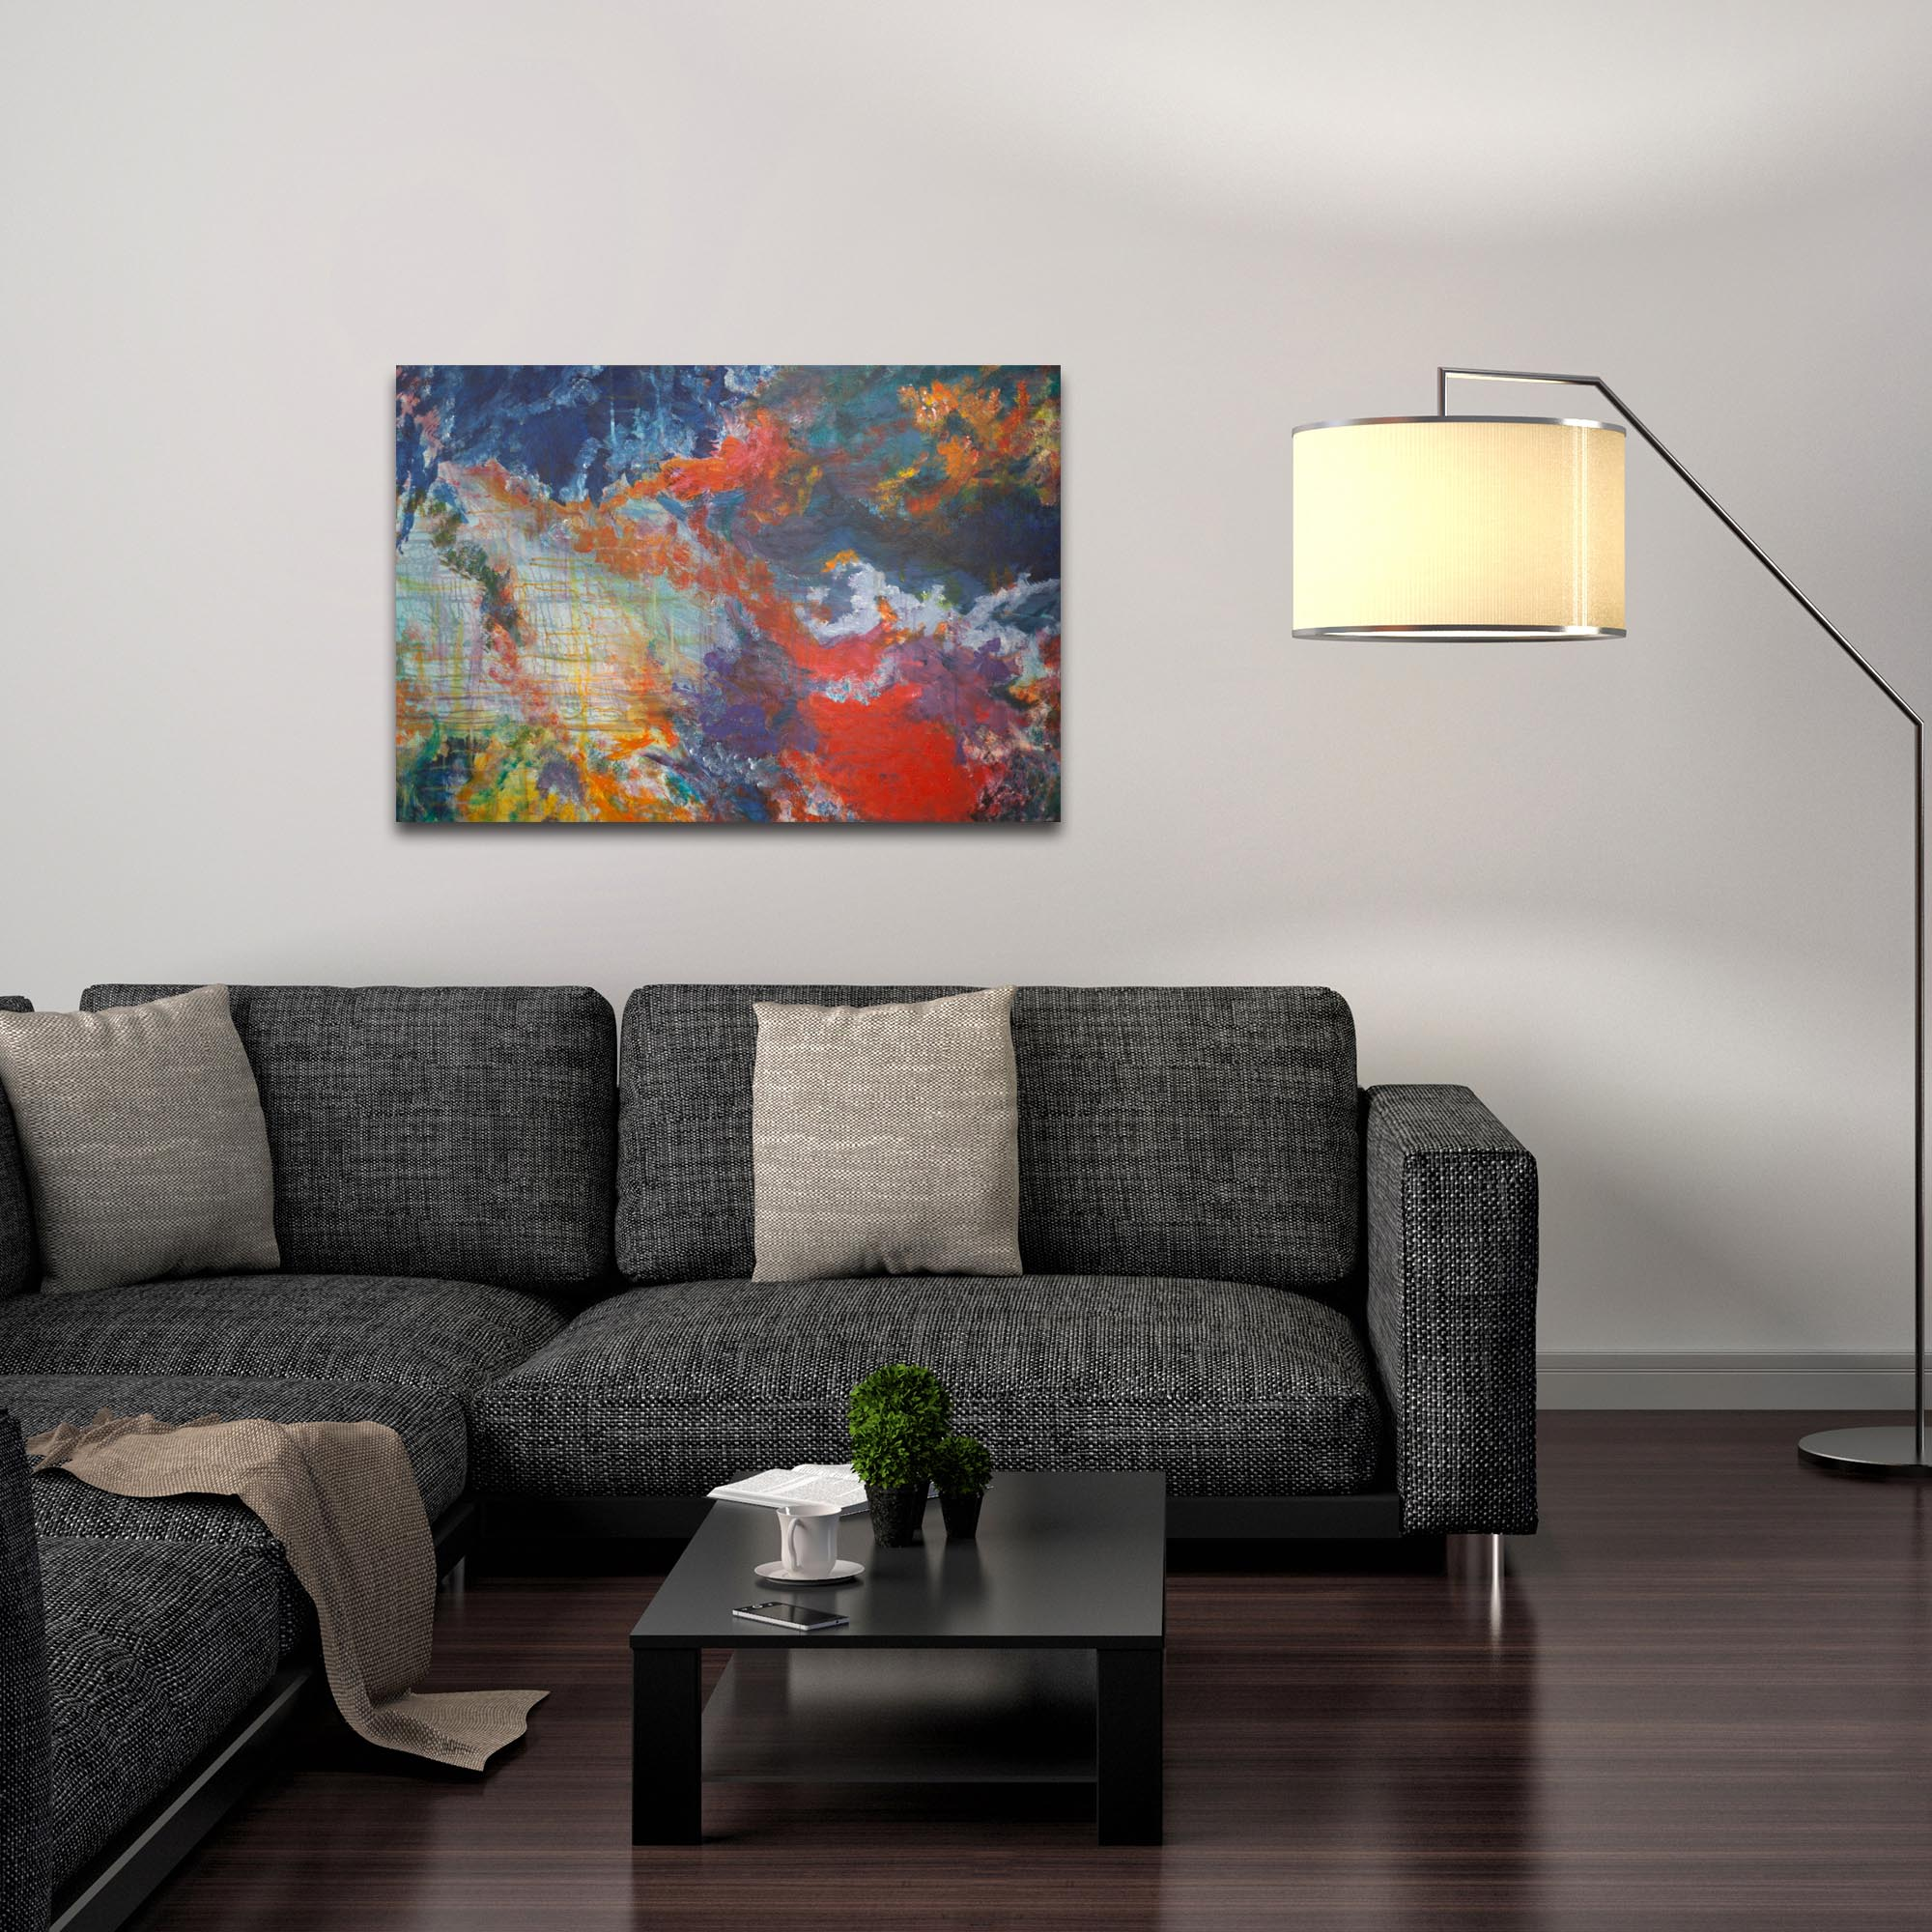 Abstract Wall Art 'Clouds of Color' - Urban Decor on Metal or Plexiglass - Lifestyle View